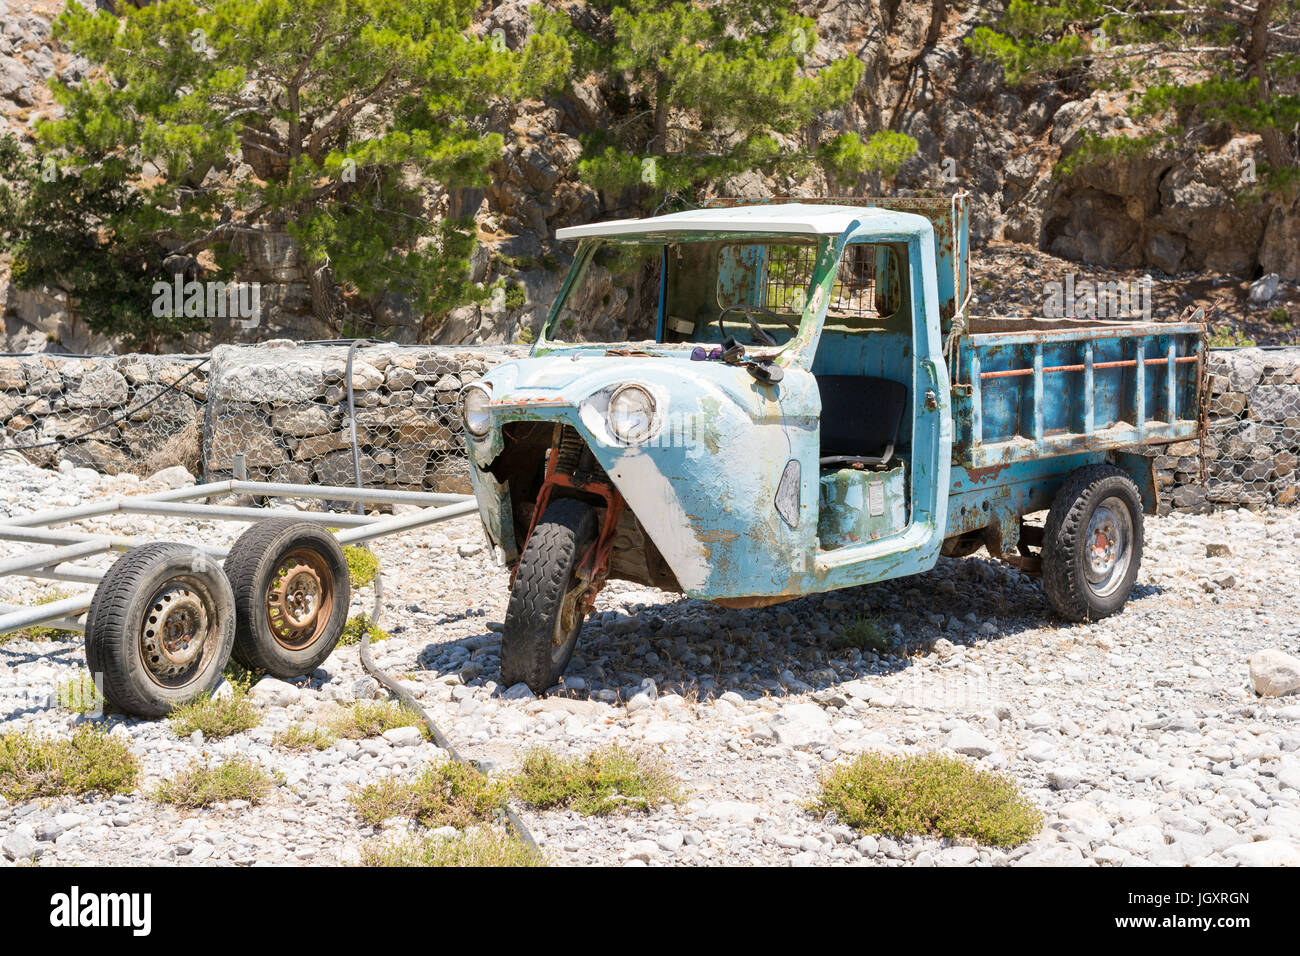 Three wheeled vehicle looking in need of some restoration but still in use in agricultural Greece. - Stock Image